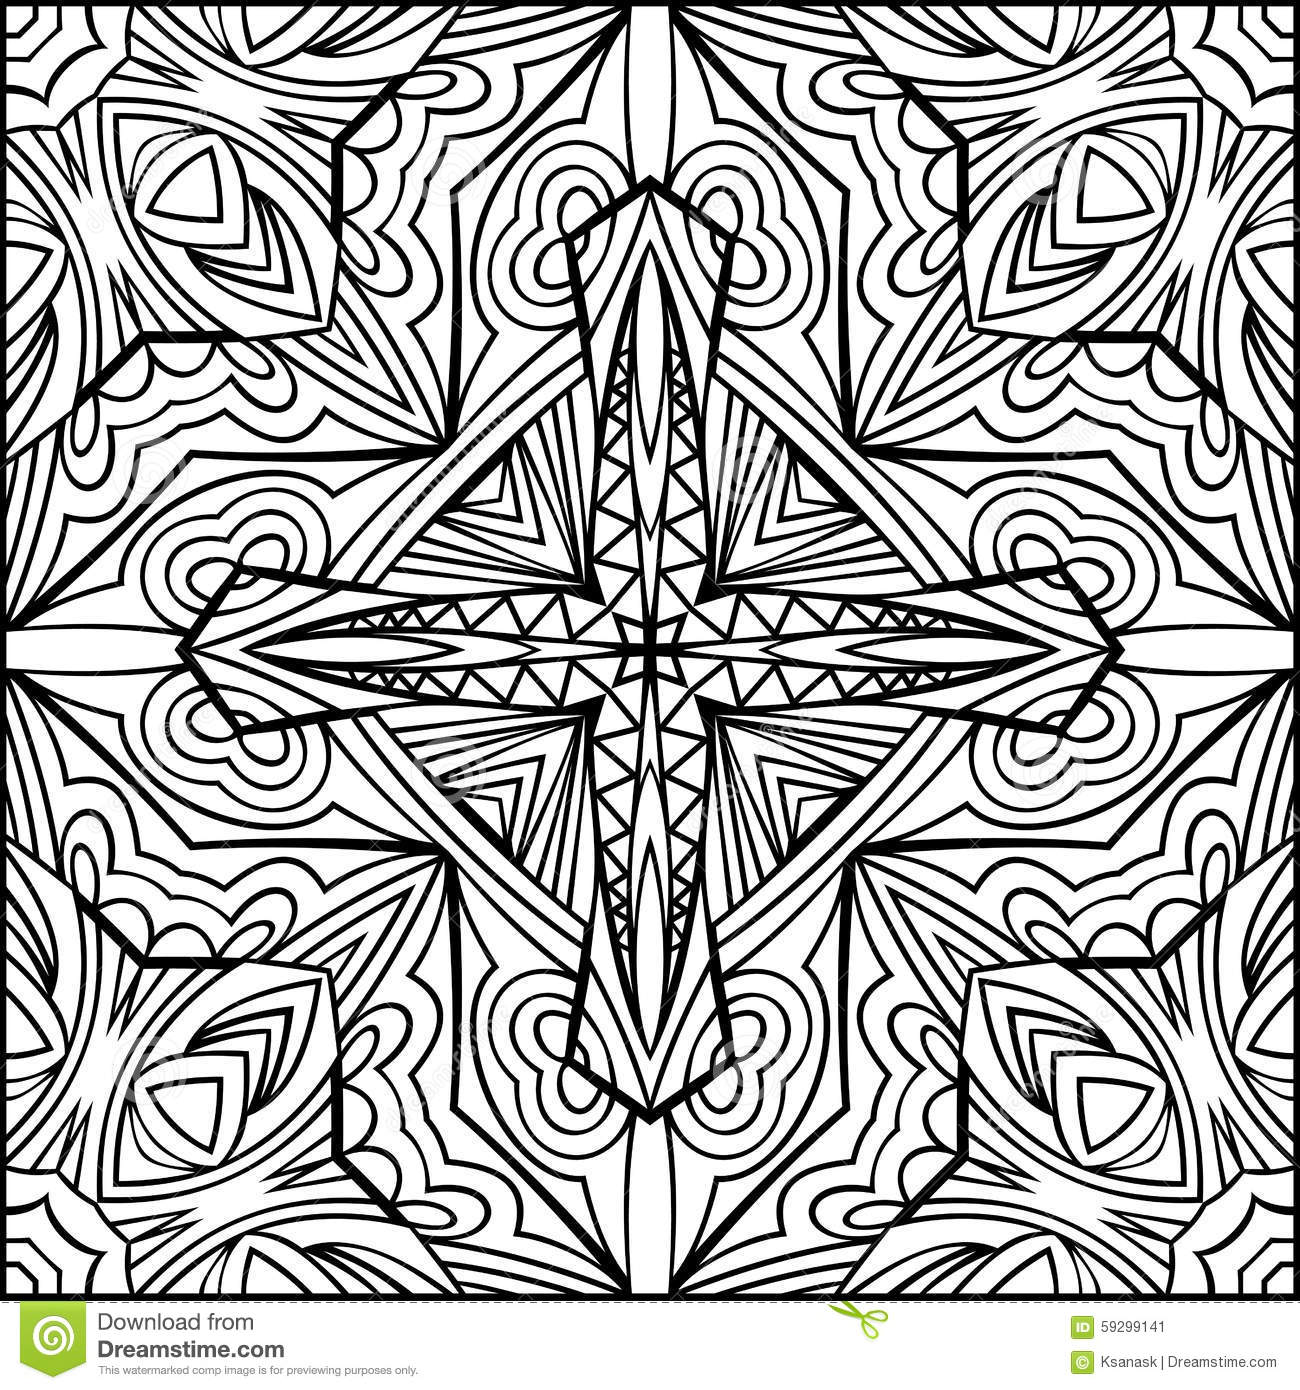 Abstract Cross Coloring Pages : Abstract cross zentangle style black and white ornament